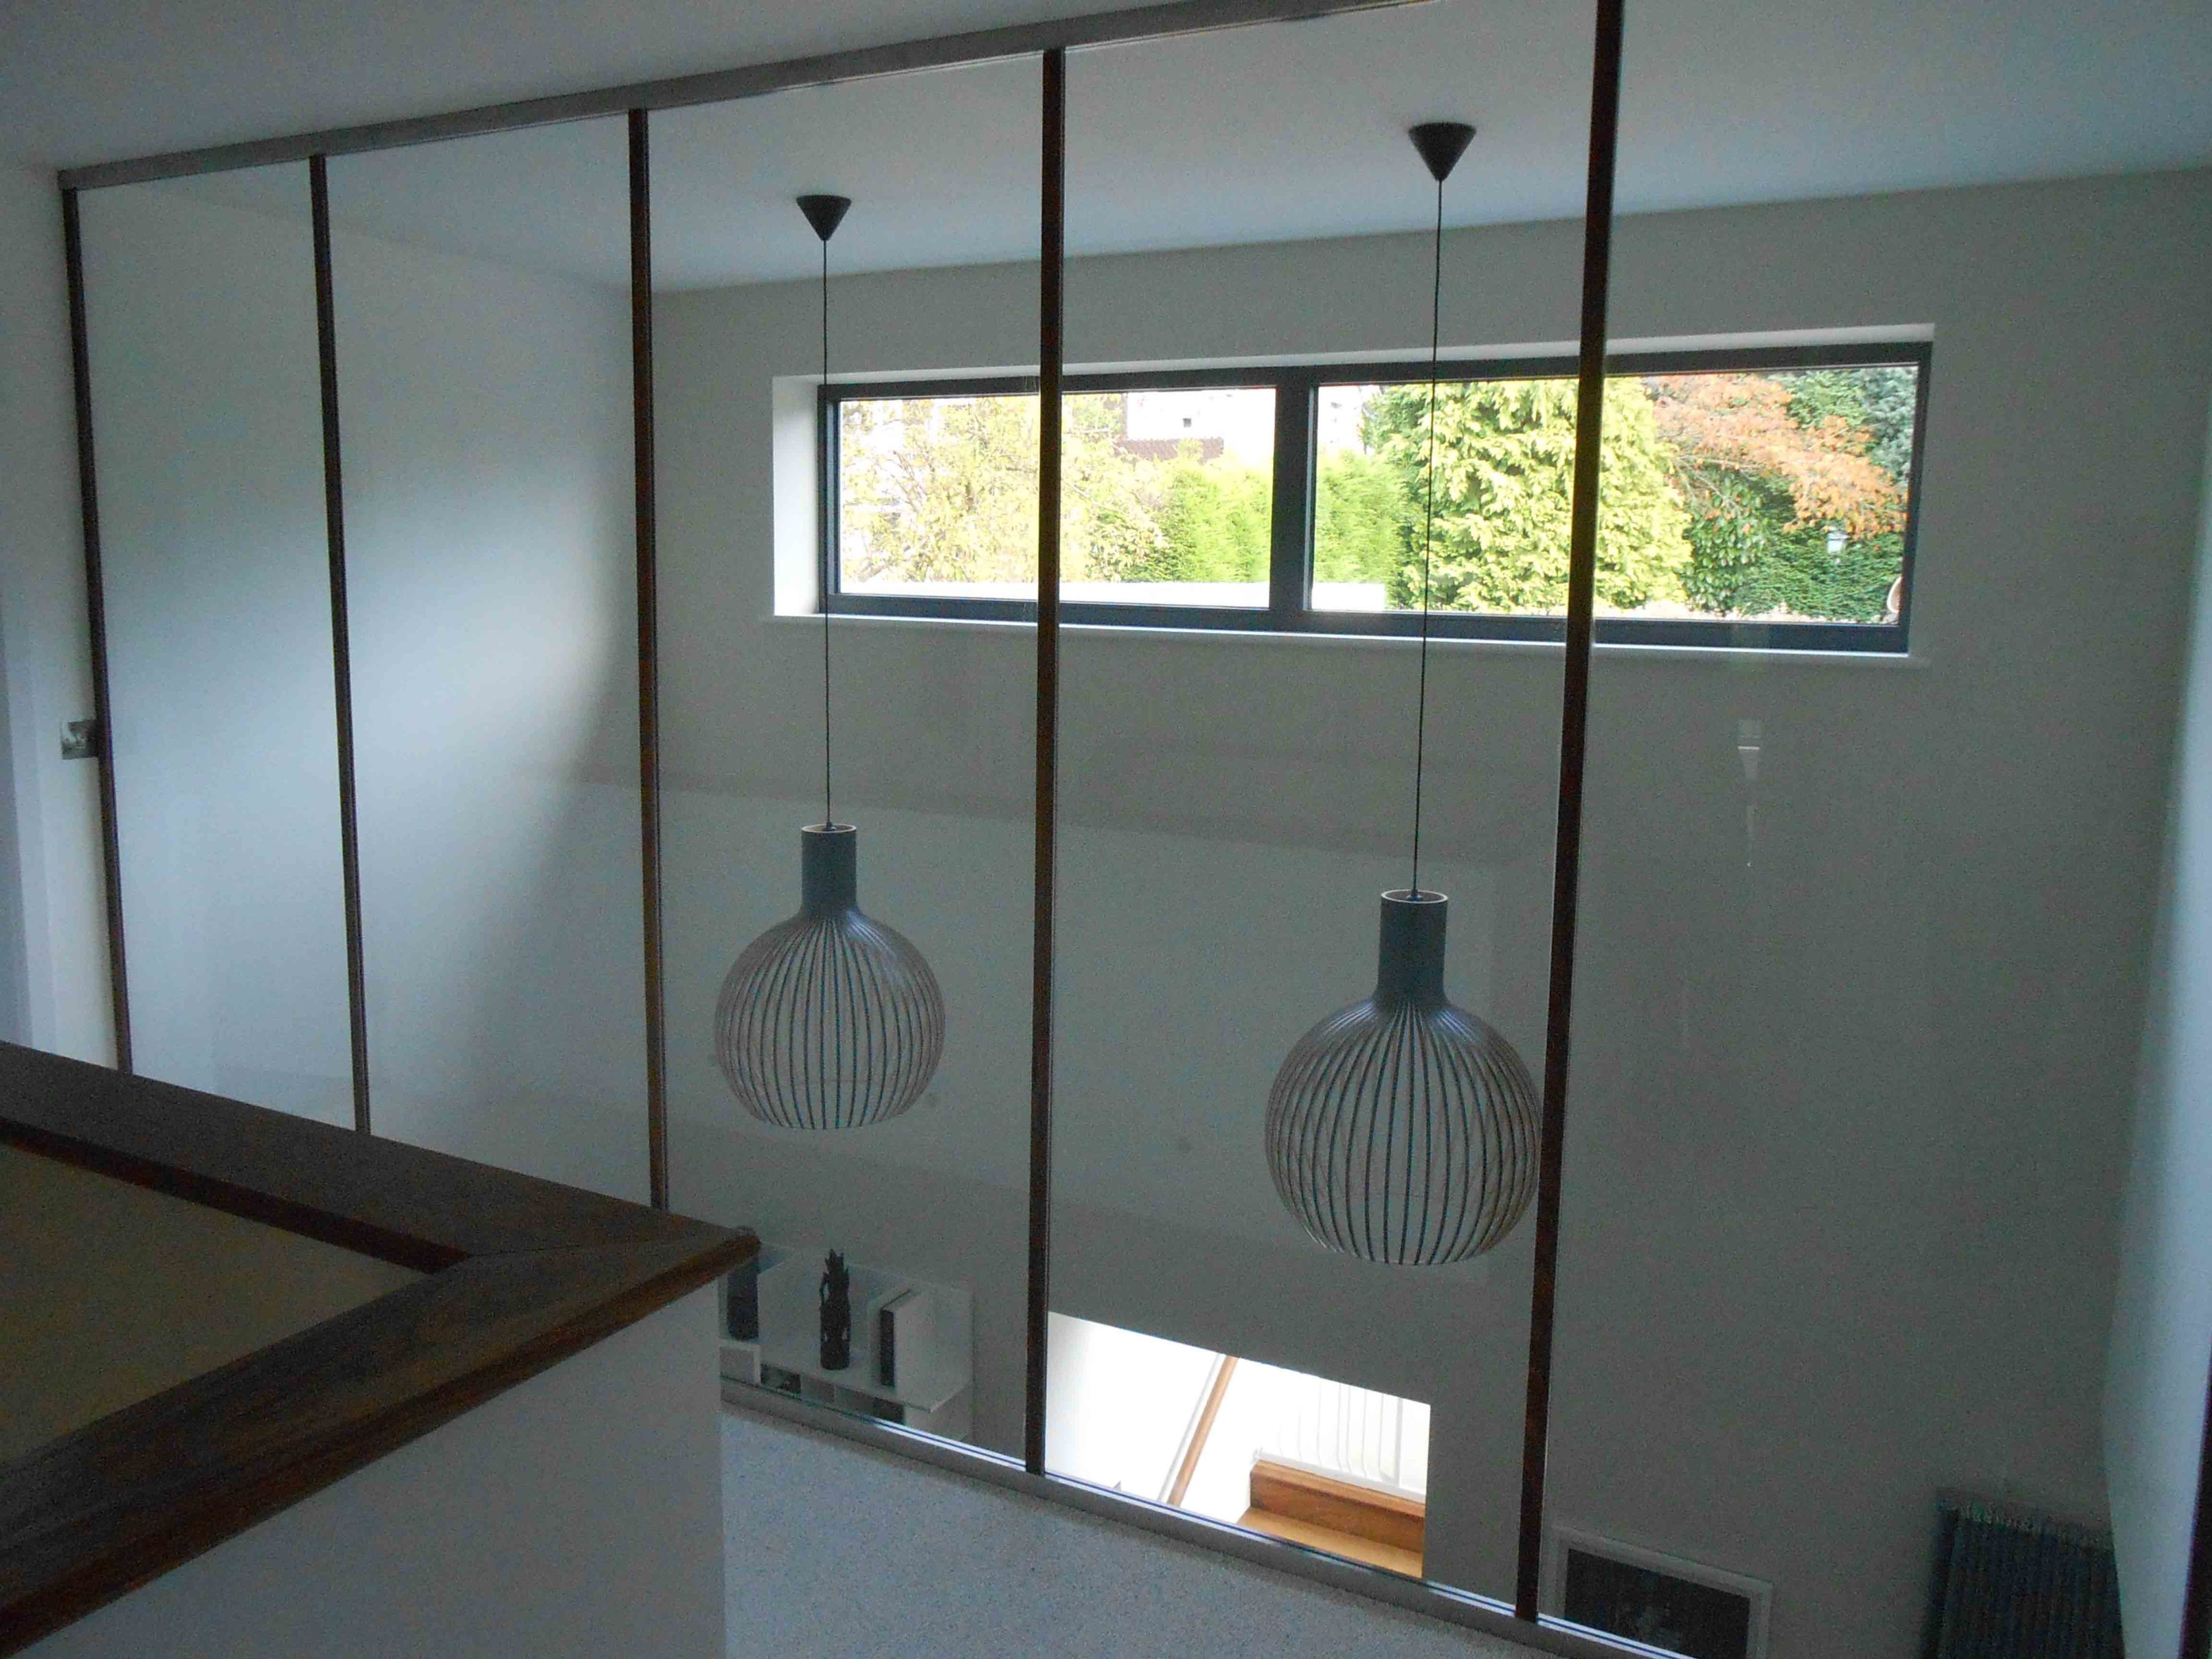 Frameless bifolding doors for every room in the home.